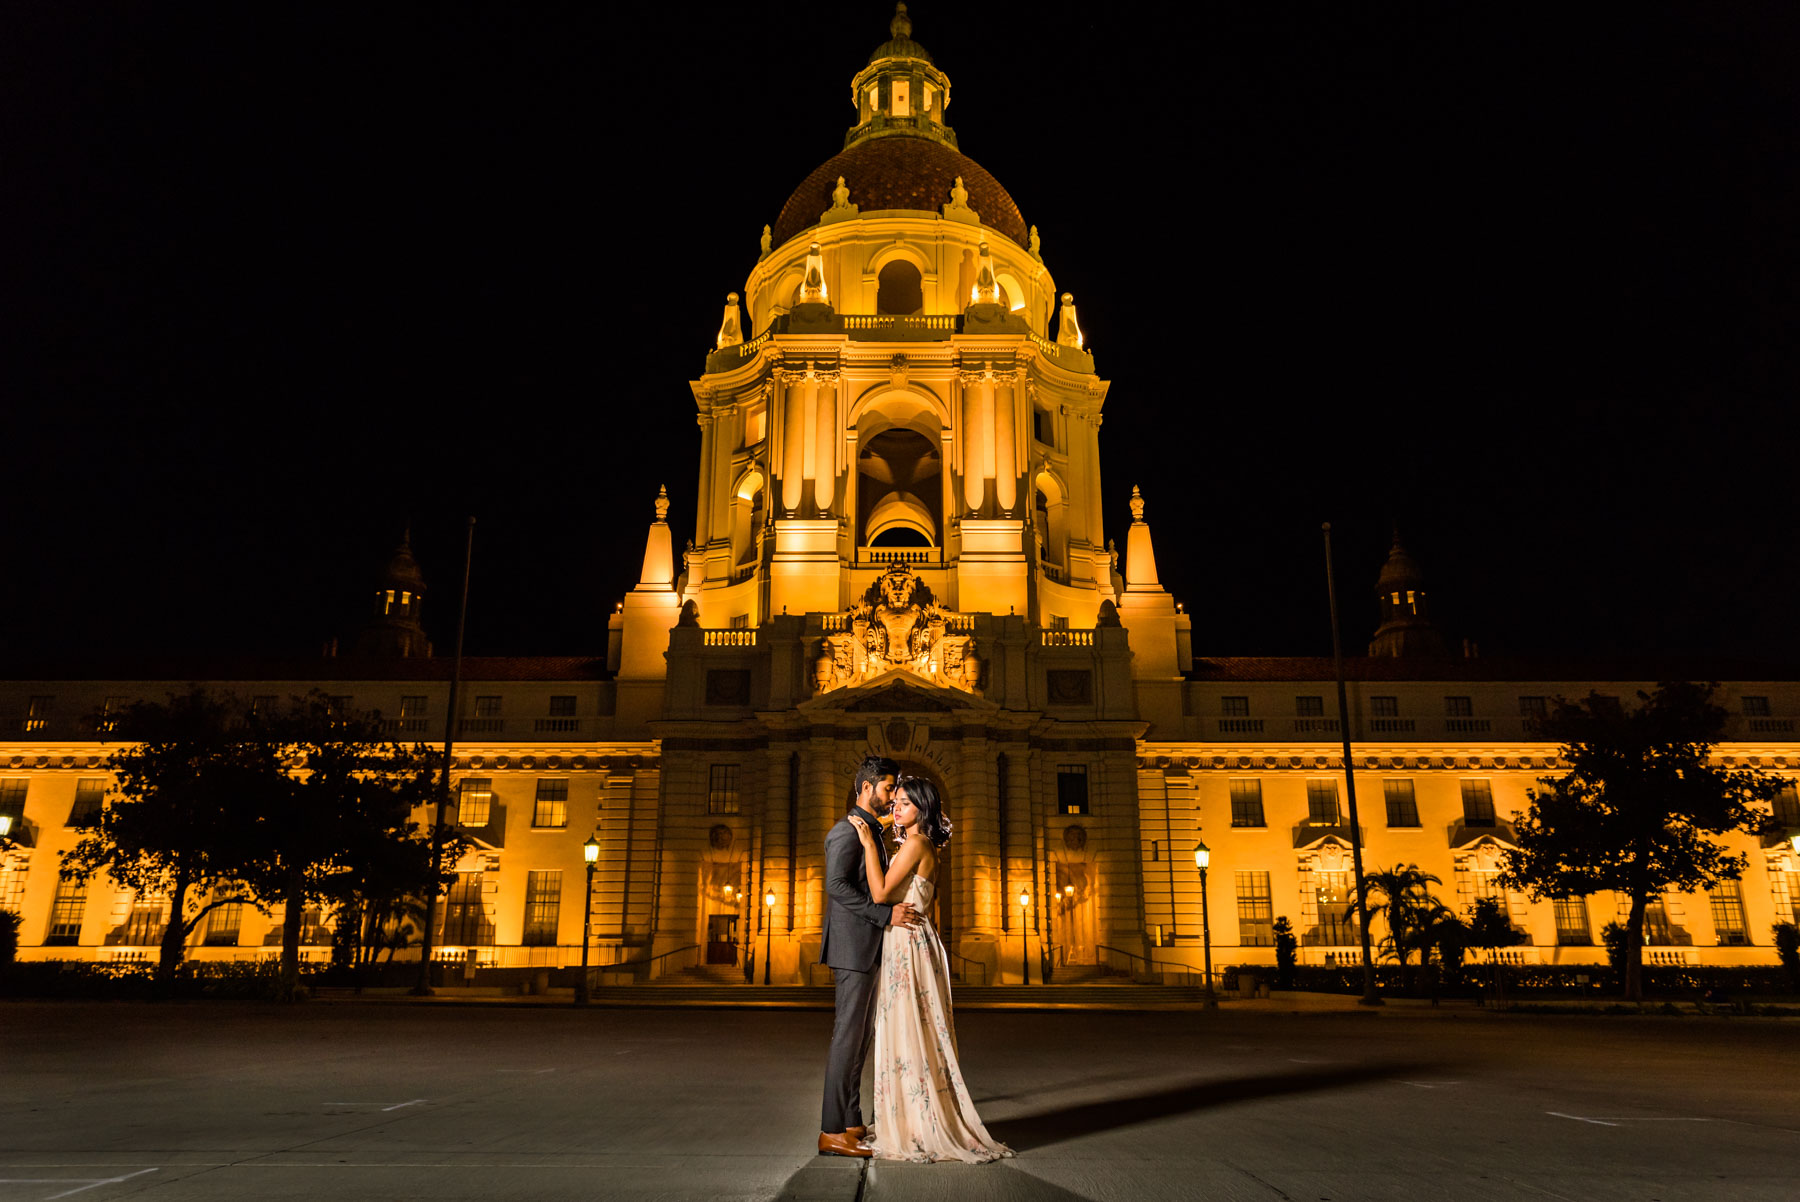 Pasadena-City-Hall-Engagement-Shoot-Isaac-and-Apoorva--2.JPG